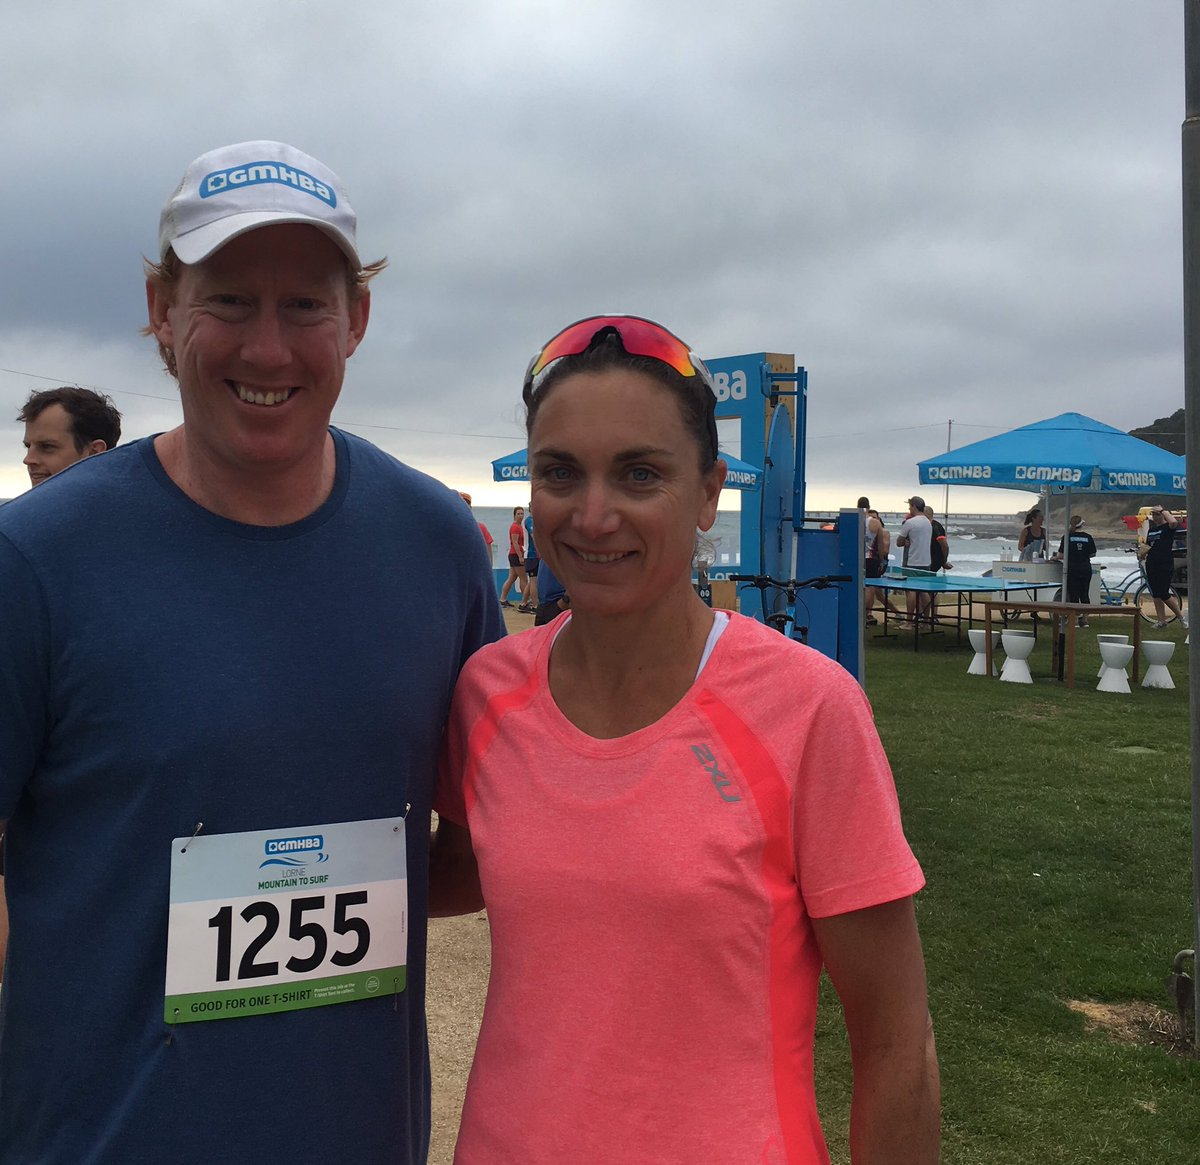 Warm up with @CameronLing &amp; @emmaECarney at 8am @MountainToSurf #running #8km #lorne<br>http://pic.twitter.com/4e3nJ32VD0